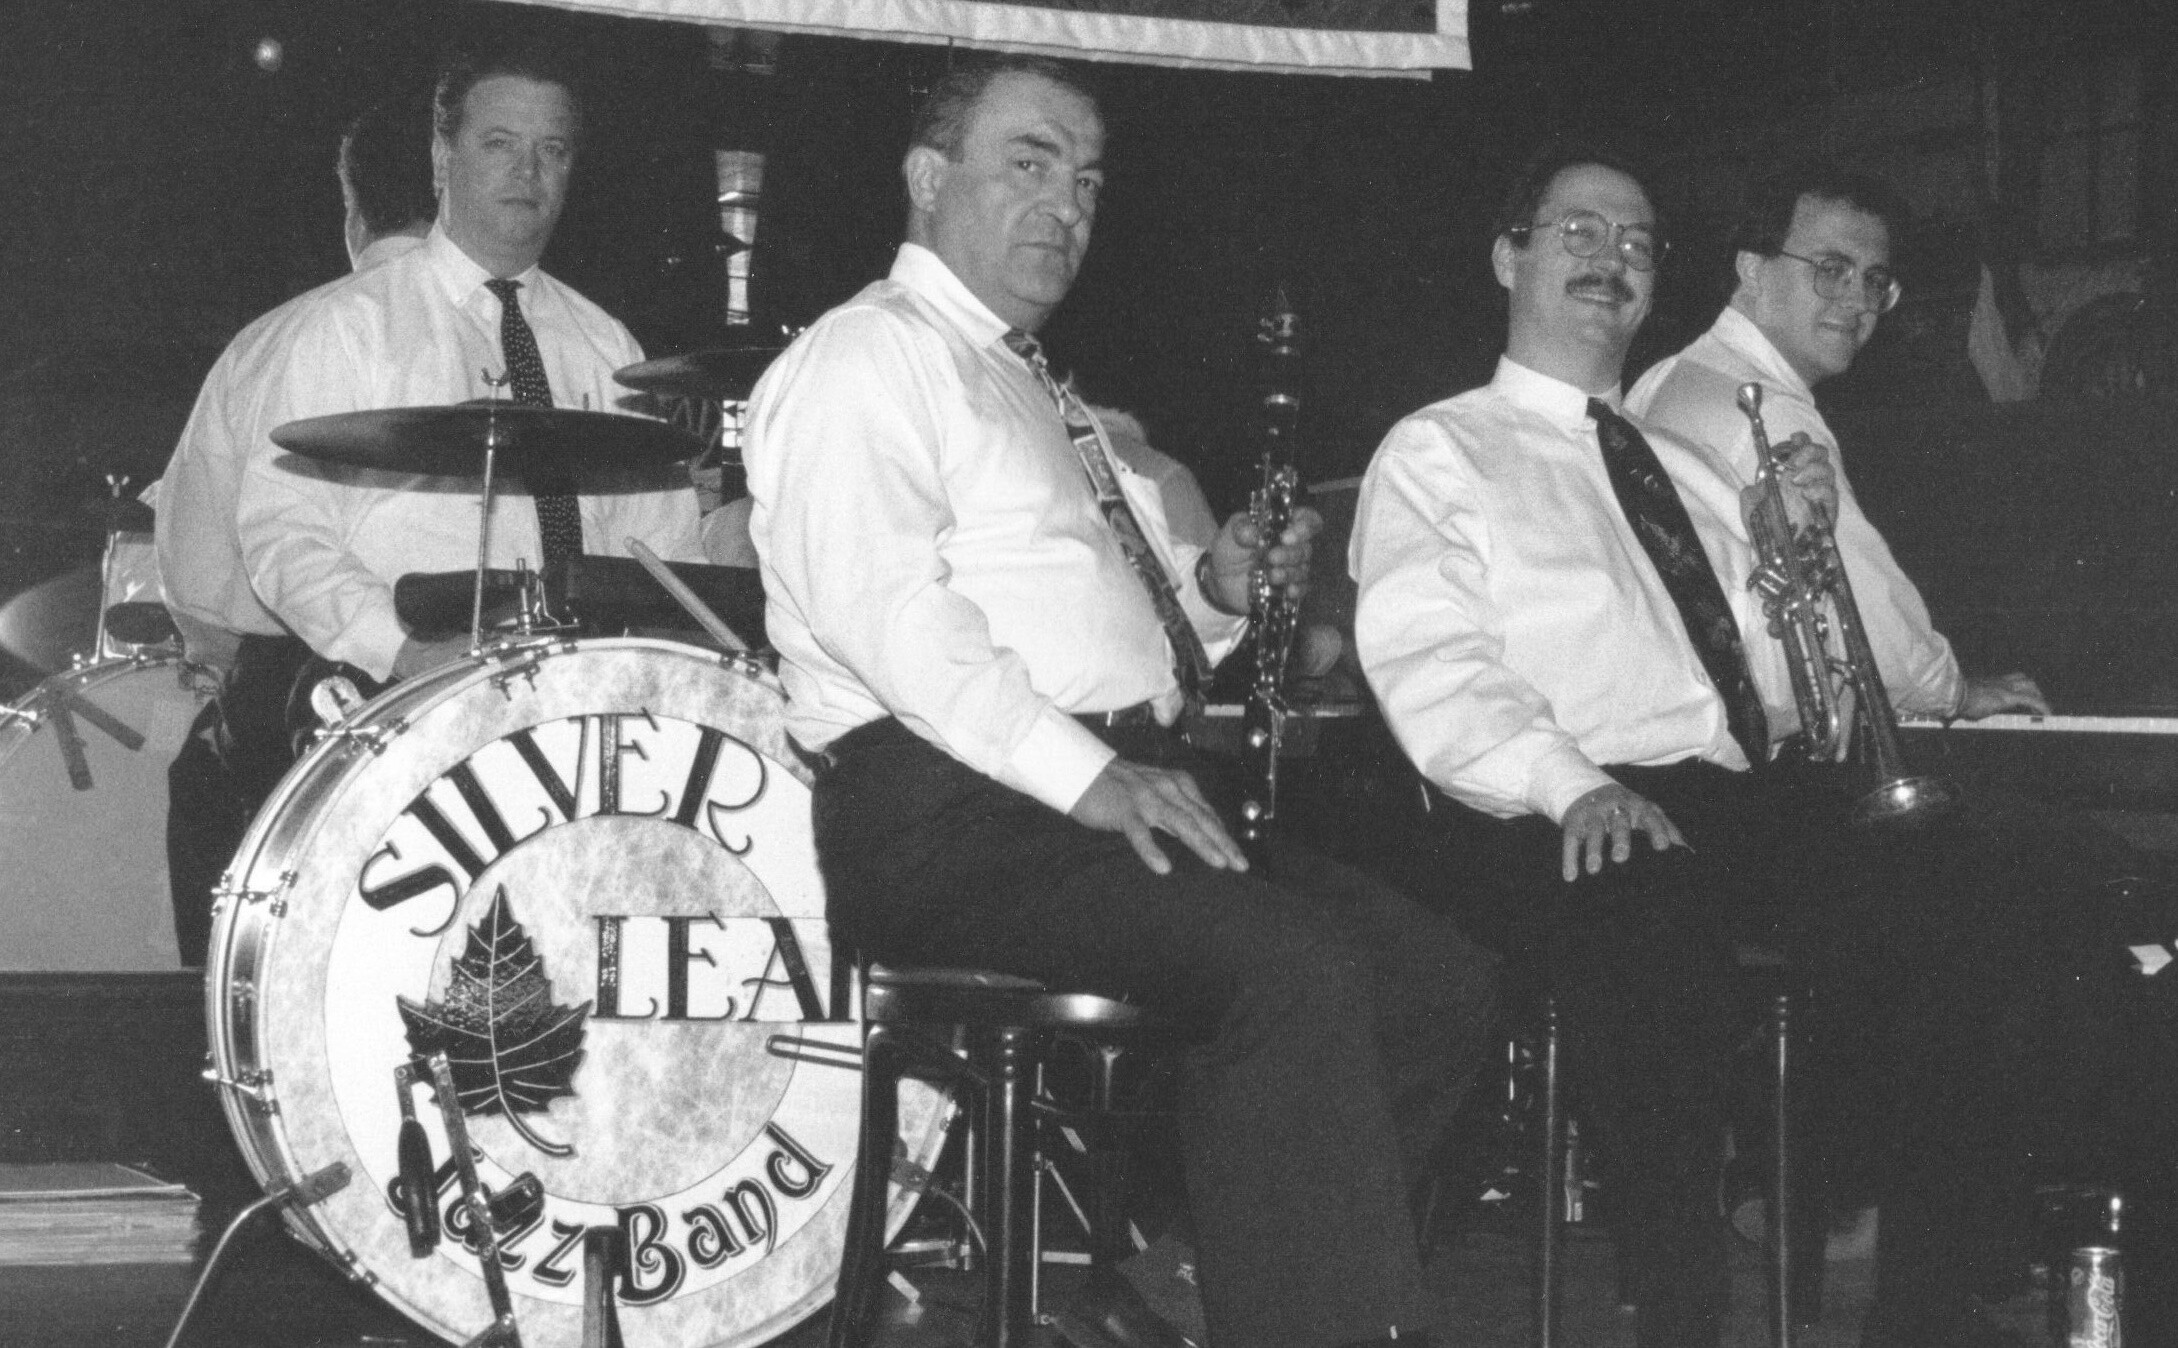 Chris Tyle on clarinet with the Silver Leaf Jazz Band at the Can - Can c. 1998